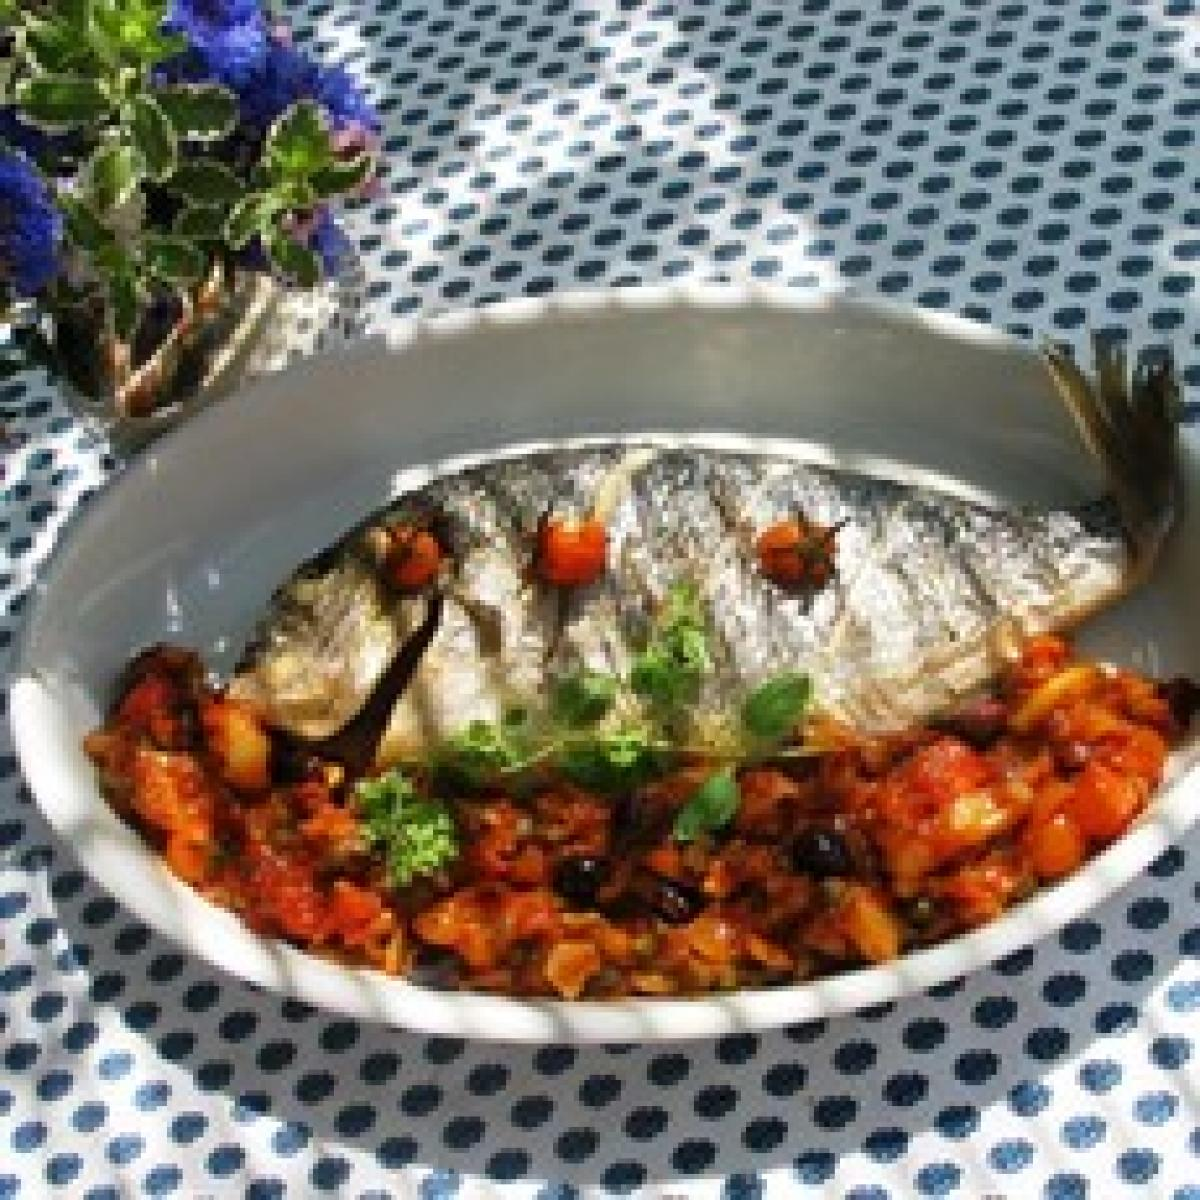 Sea bream 003 27058